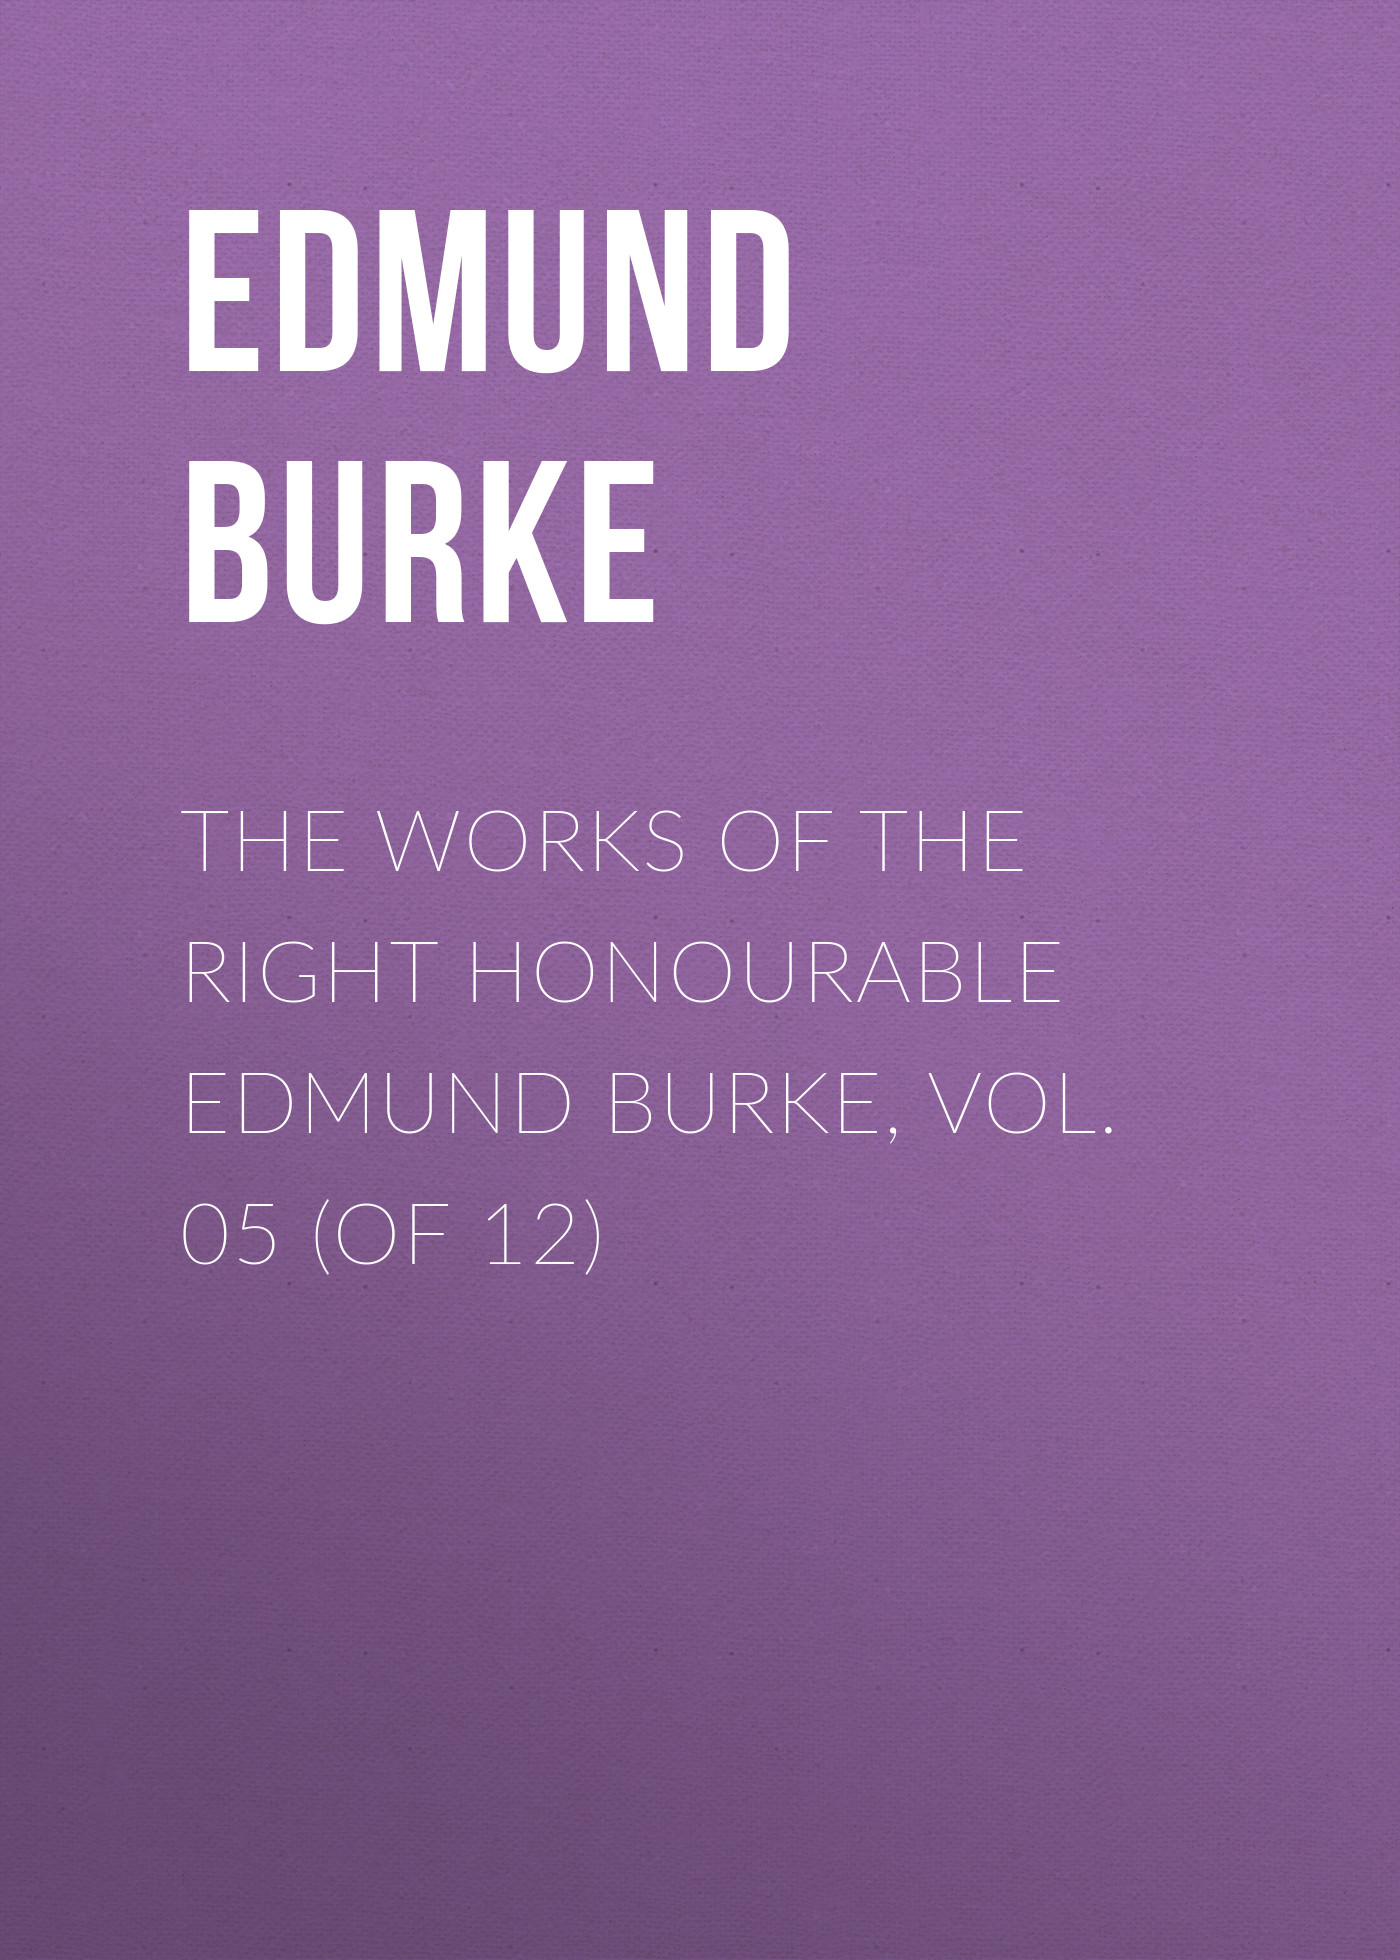 Edmund Burke The Works of the Right Honourable Edmund Burke, Vol. 05 (of 12) edmund burke the works of the right honourable edmund burke vol 02 of 12